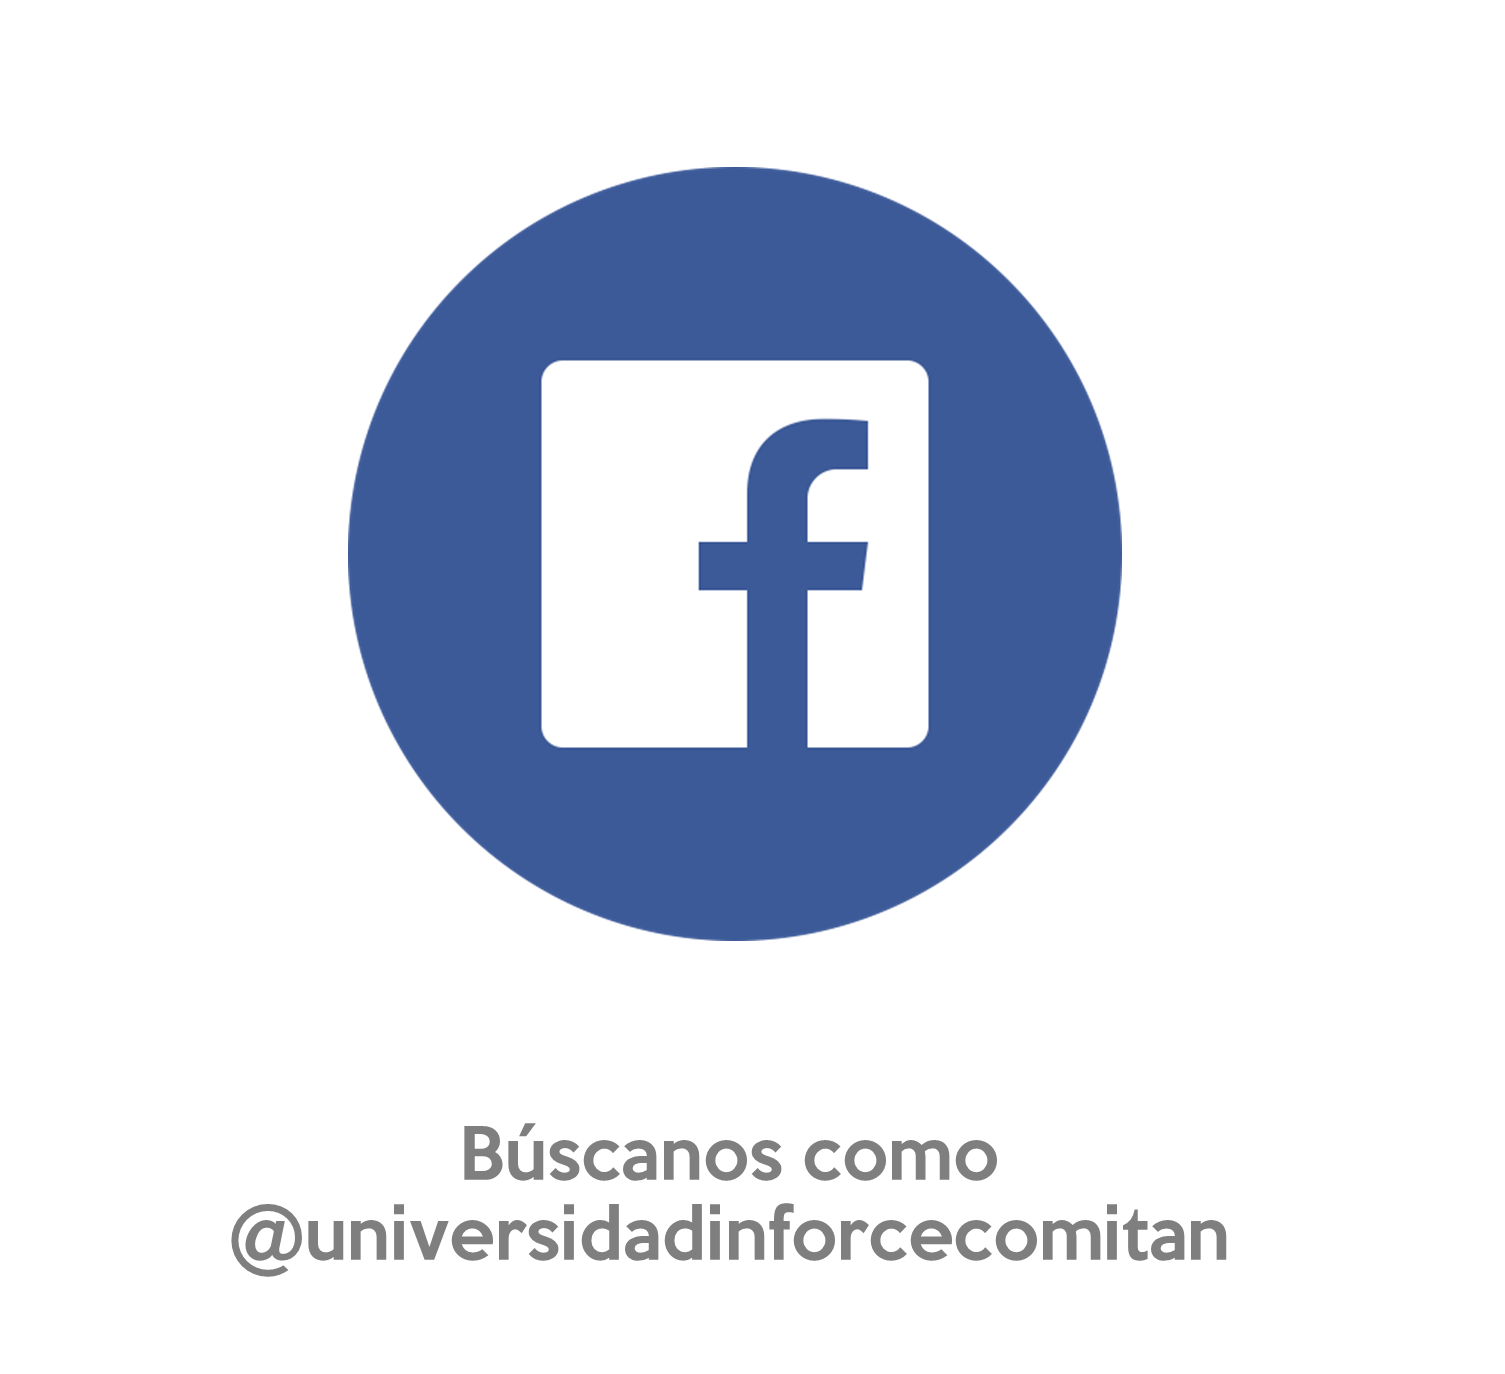 facebook-universidad-inforce-comitan.png